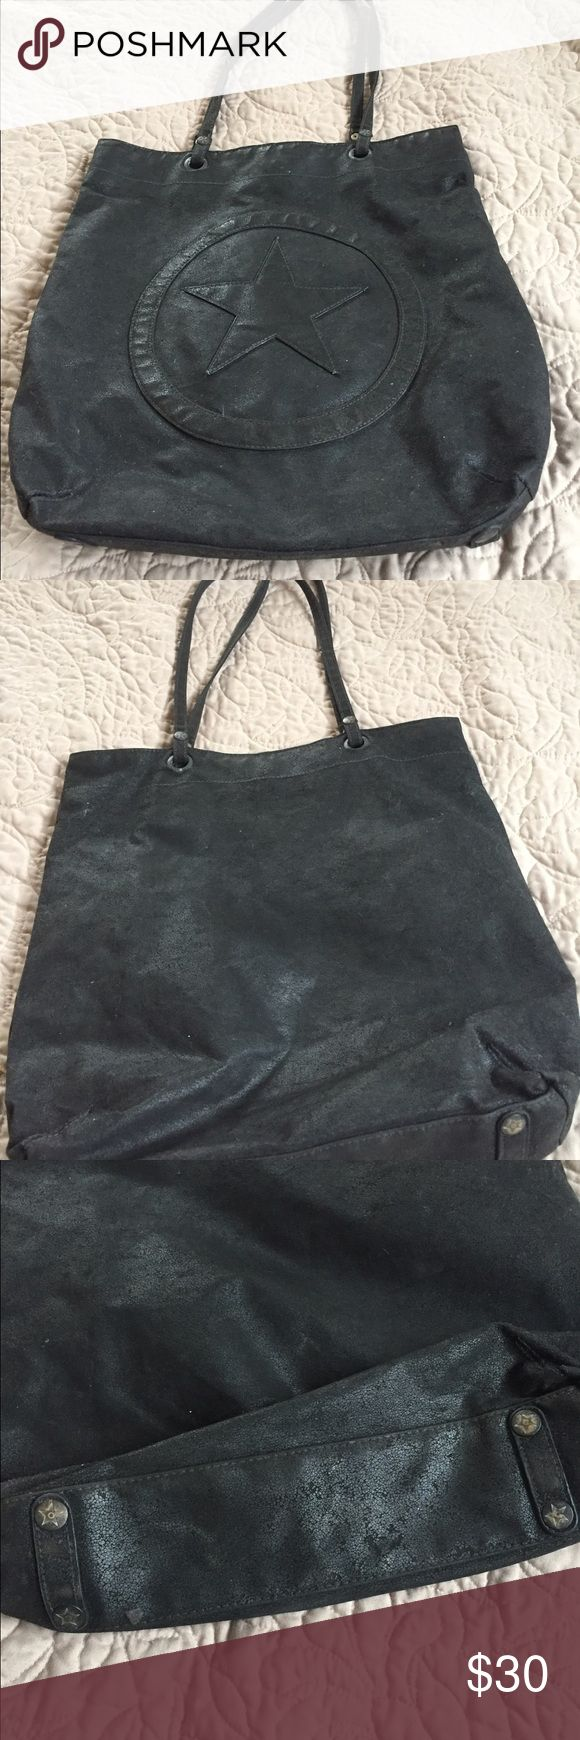 Converse All Star black tote bag. Great bag! Converse All Star black tote bag. Great for books, laptops, iPads, etc. great and roomy bag. Converse Bags Totes